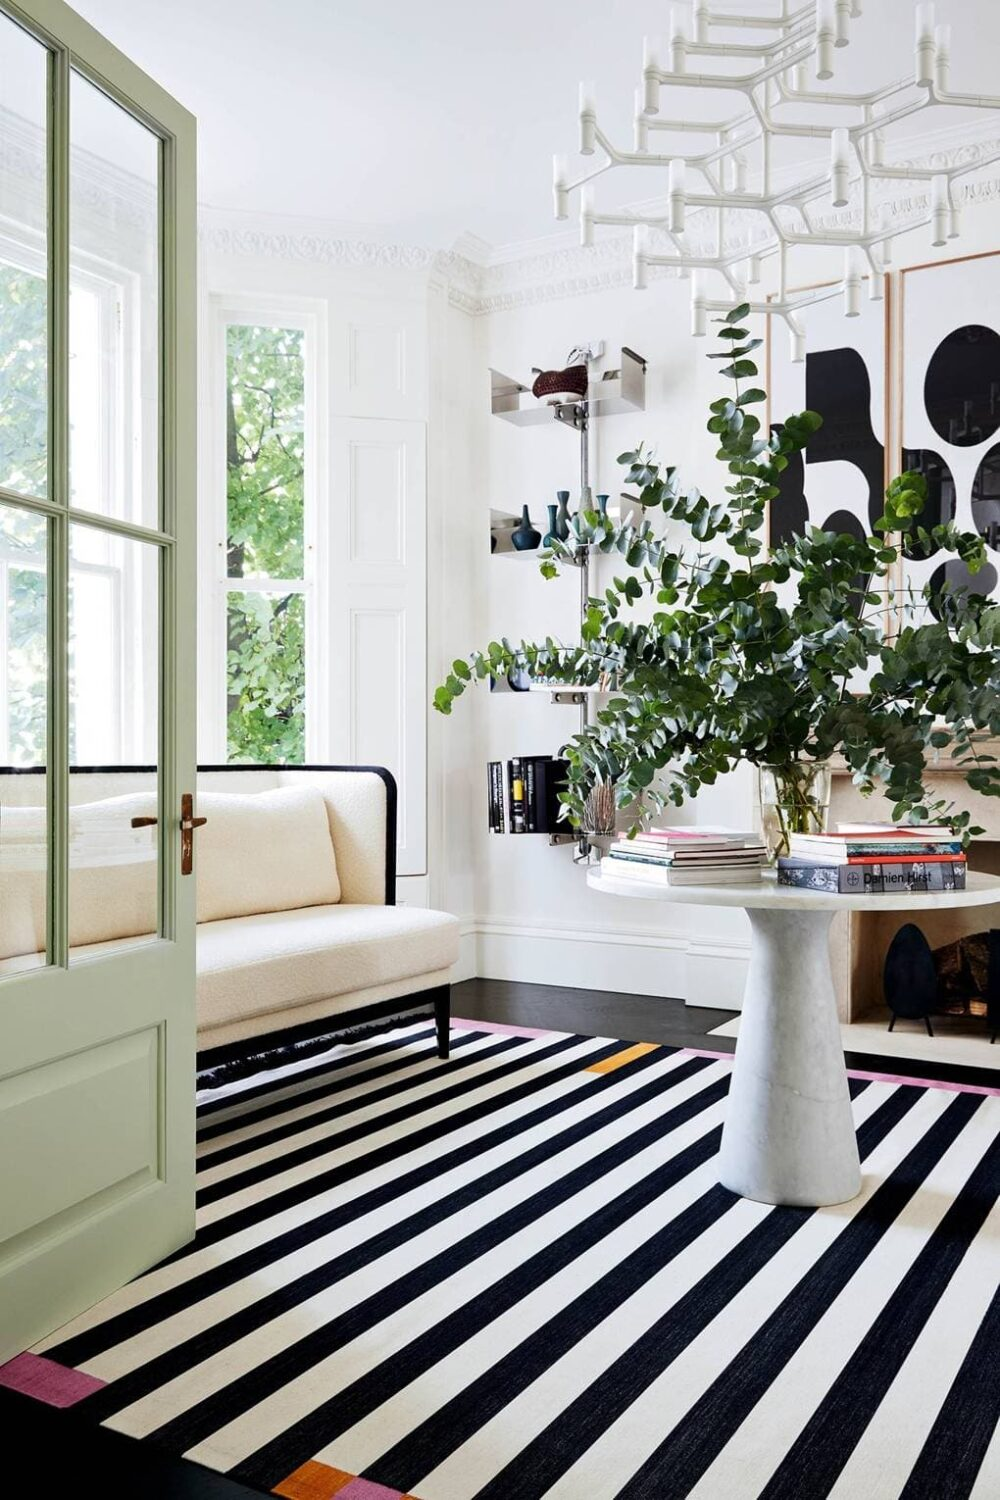 Top 12 Home & Interior Design YouTube Channels To Follow